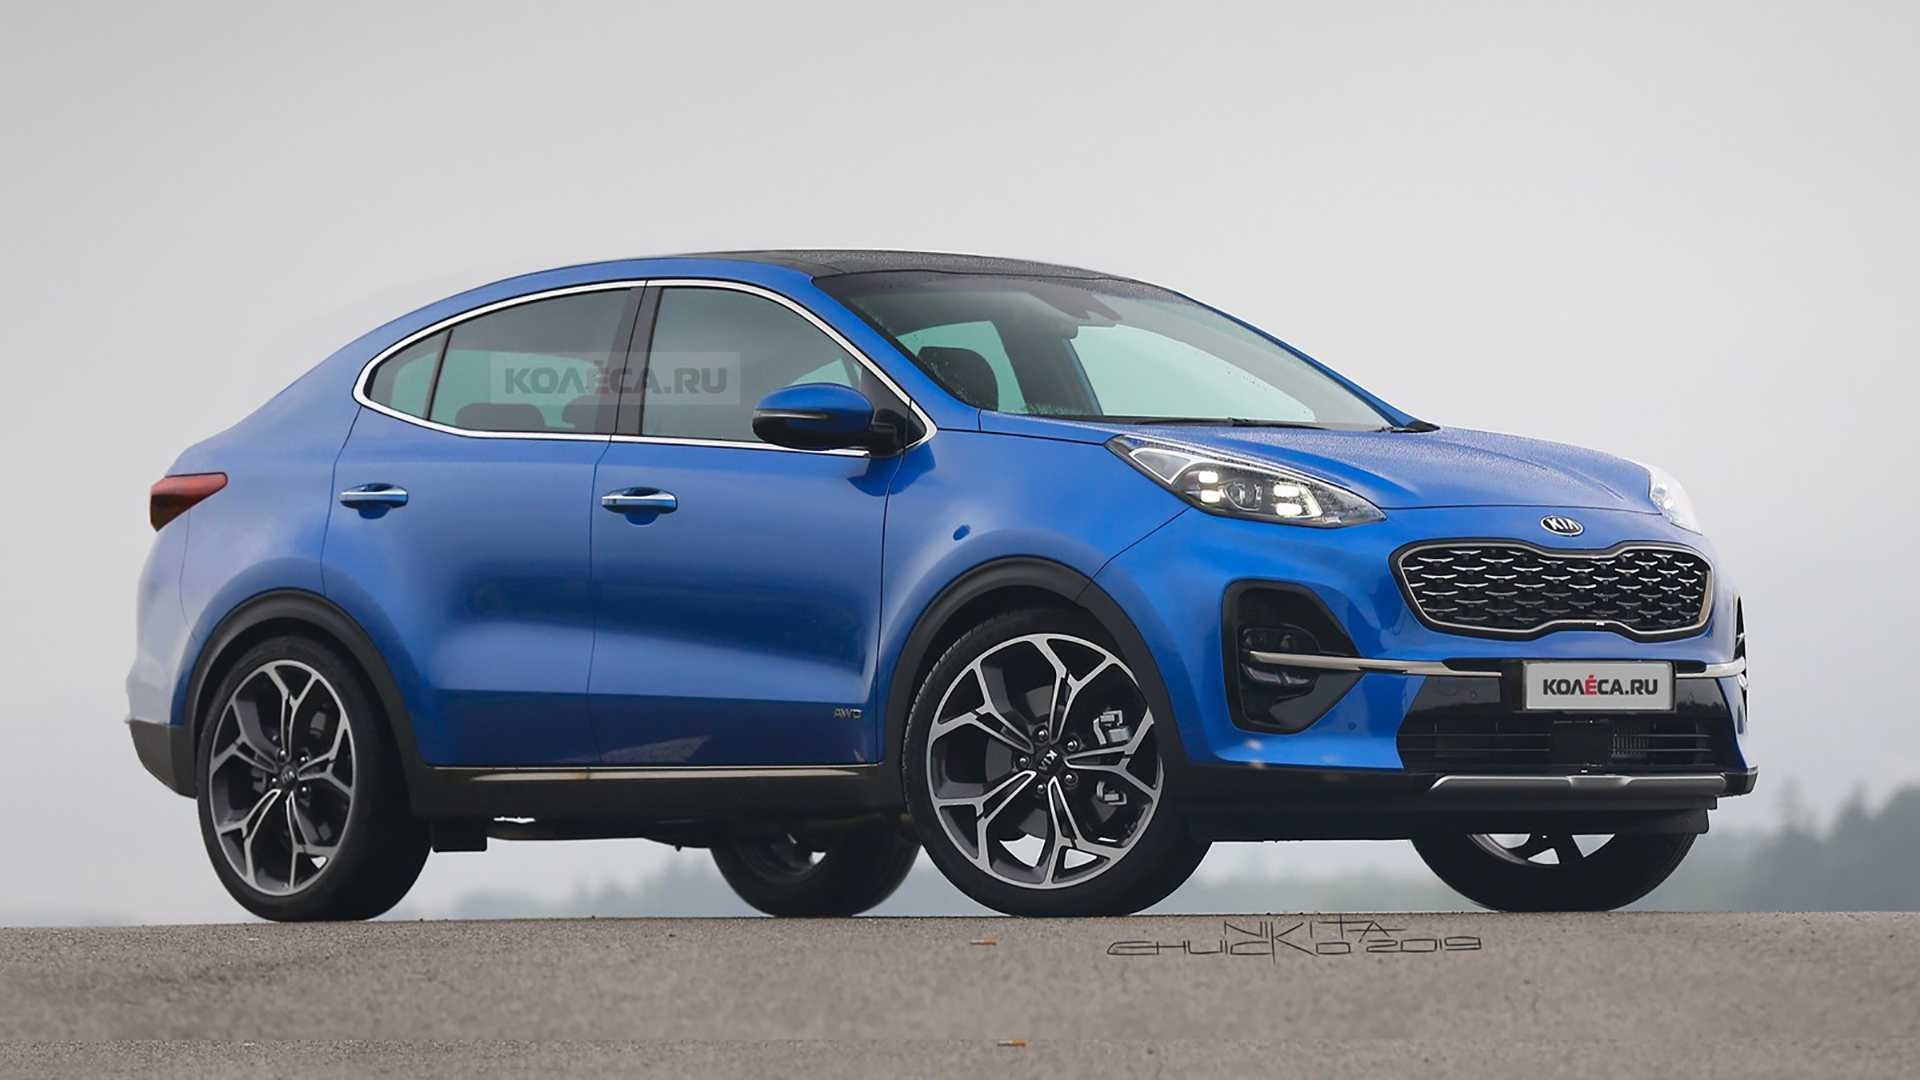 How Does Kia Sportage Look with this Coupe SUV Treatment? 2